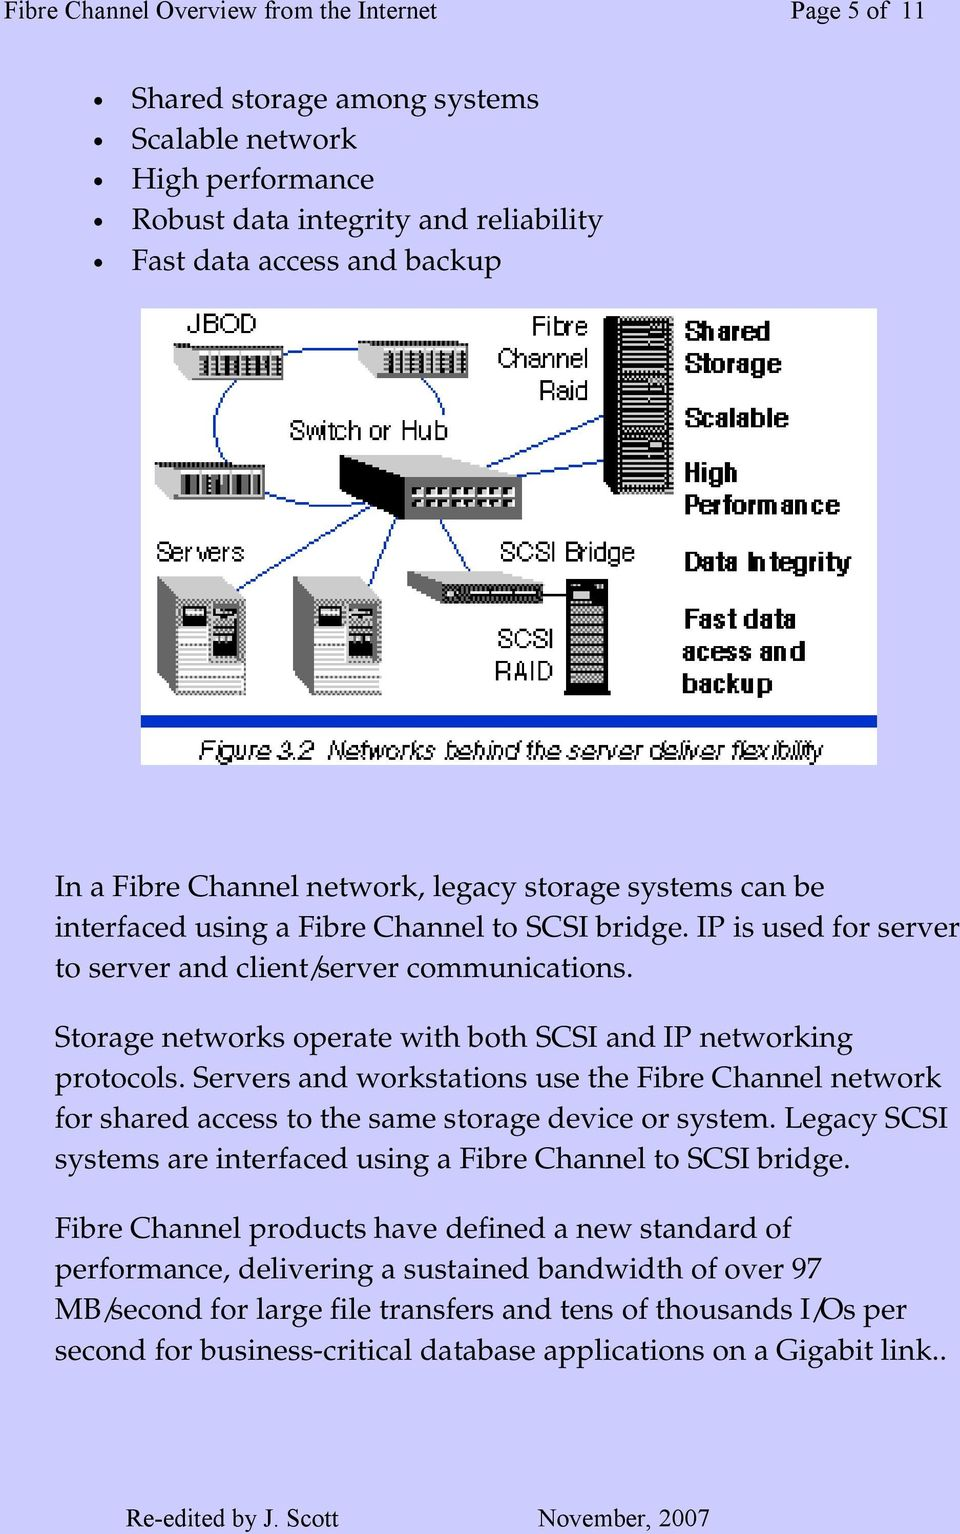 Storage networks operate with both SCSI and IP networking protocols. Servers and workstations use the Fibre Channel network for shared access to the same storage device or system.